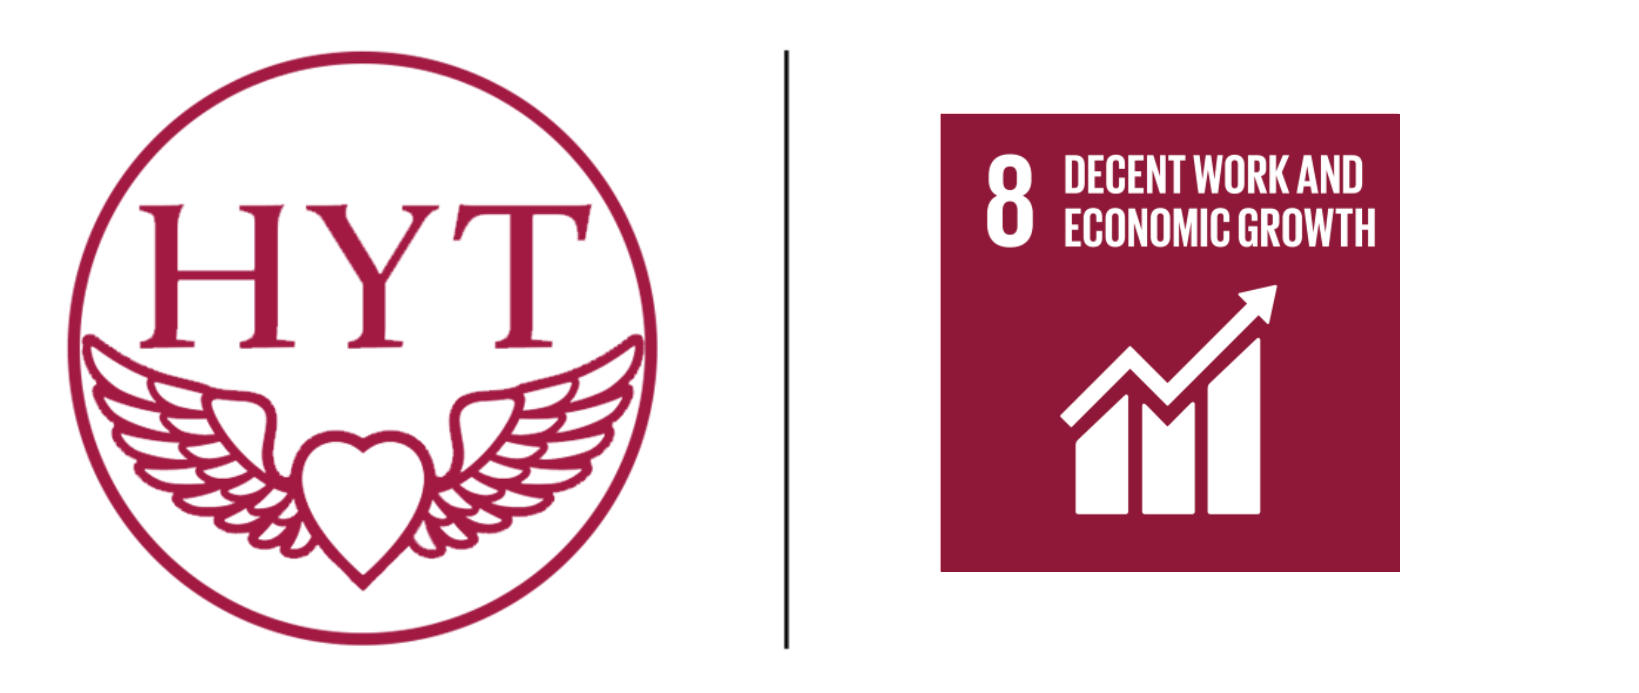 HYT supports Decent Work and Economic Growth